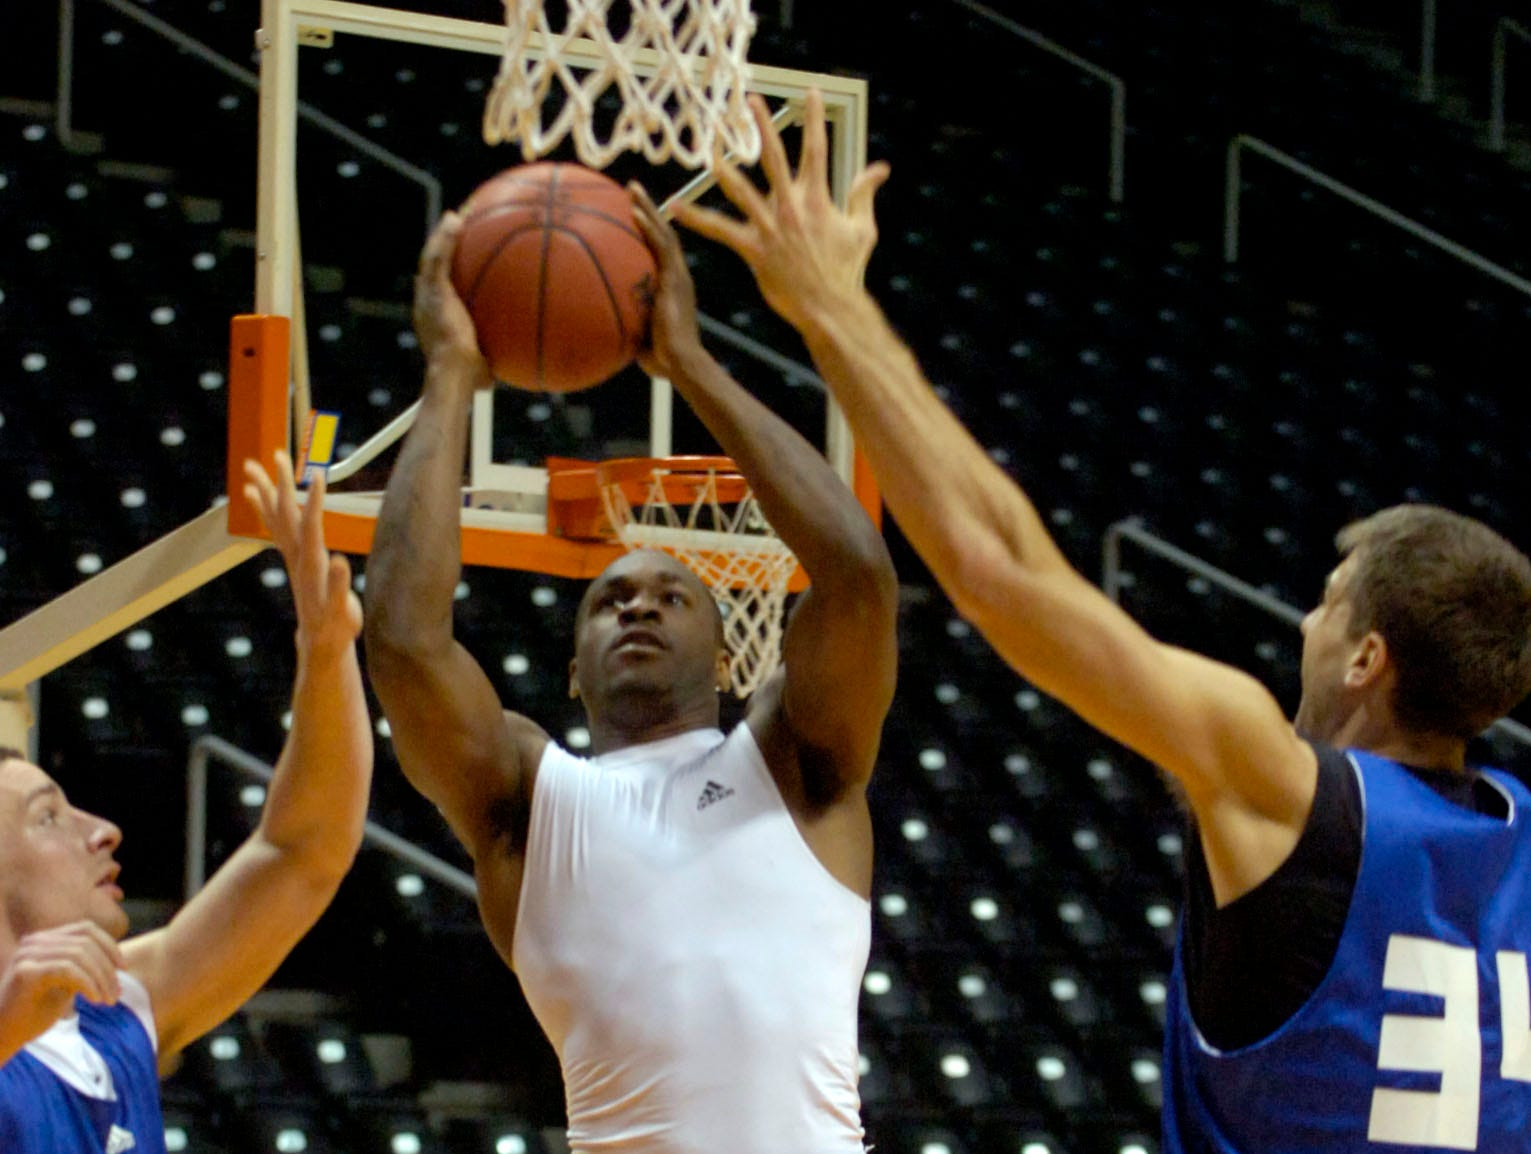 Tennessee's Ramar Smith goes to the basket during basketball team practice Tuesday morning for the first game of the 2008 NCAA tournament to be played on Friday in Birmingham, AL.